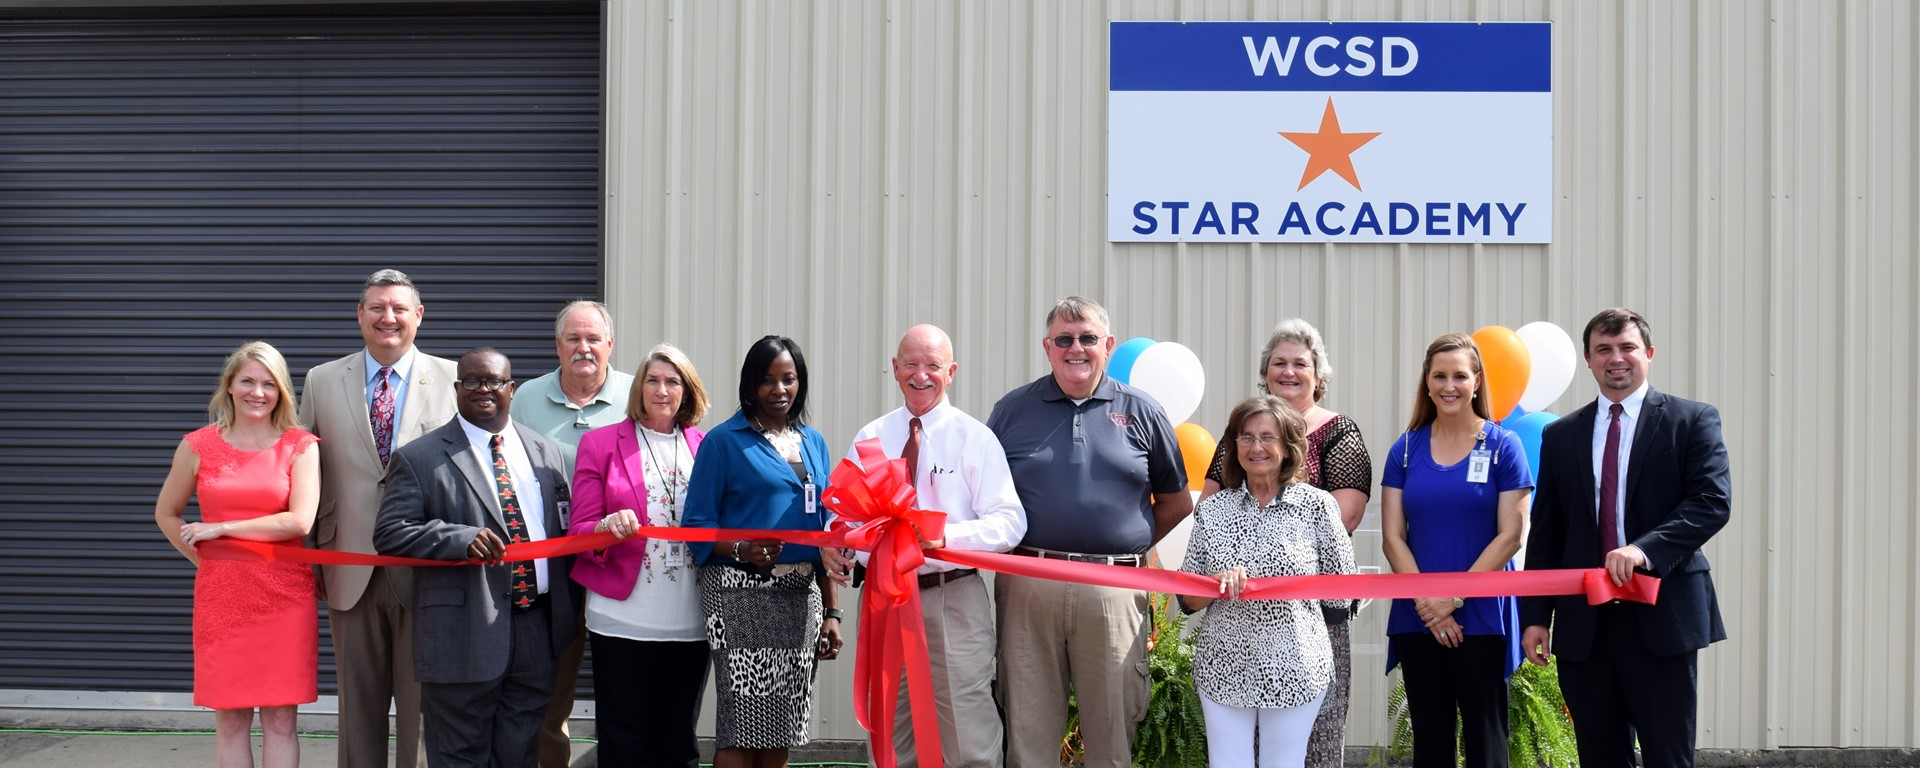 Star Academy Ribbon Ceremony